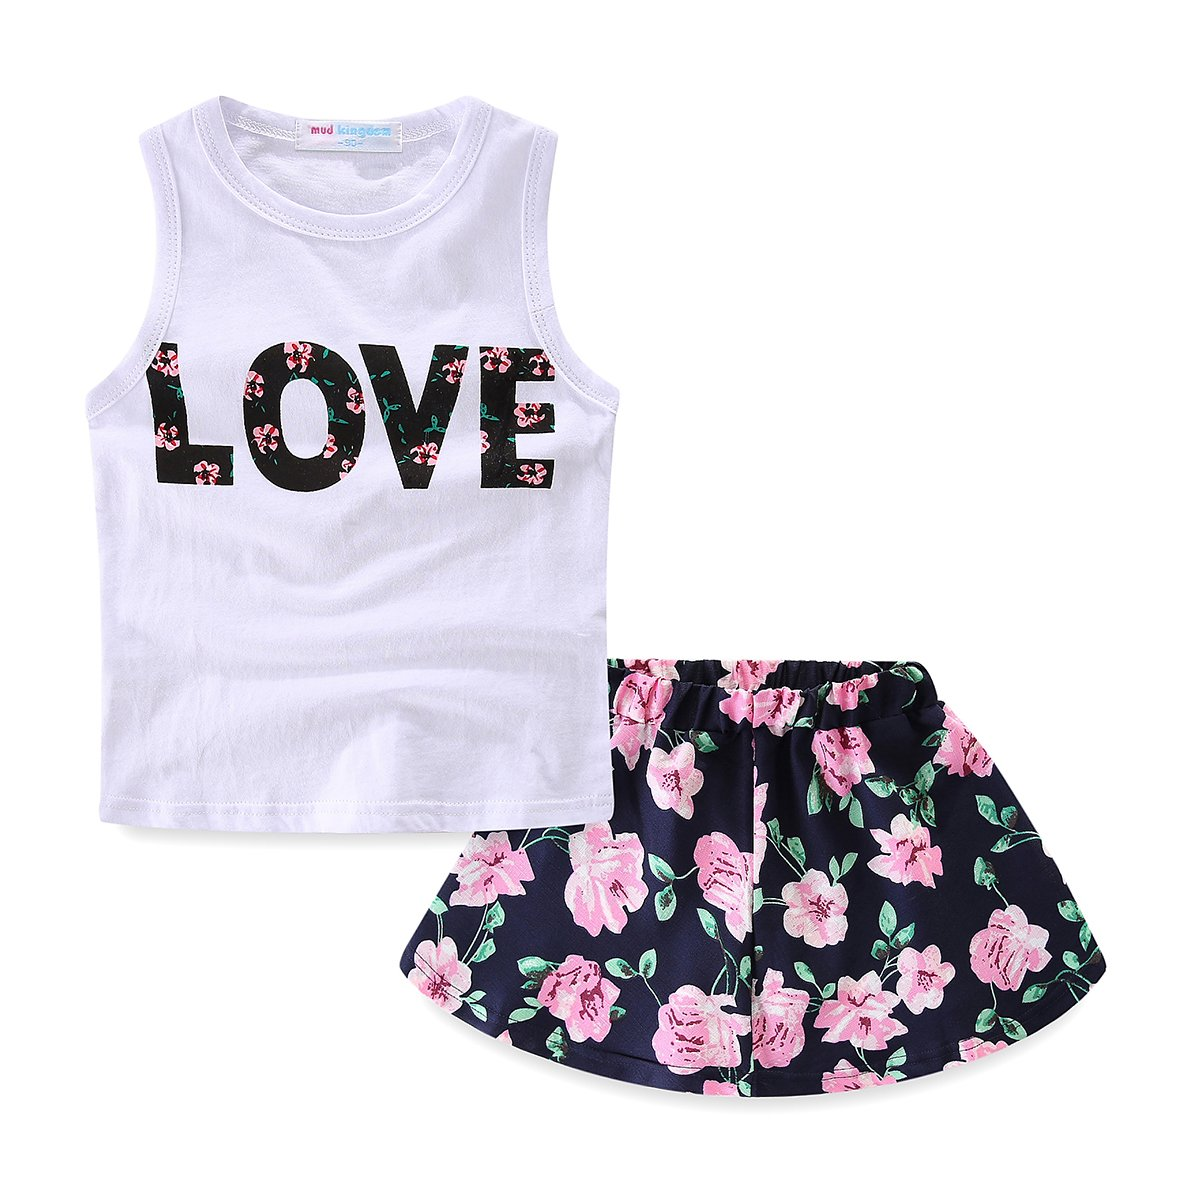 Mud Kingdom Girls Outfits Summer Holiday Floral Tank Tops and Skirts Clothes Sets Chiffon 3T